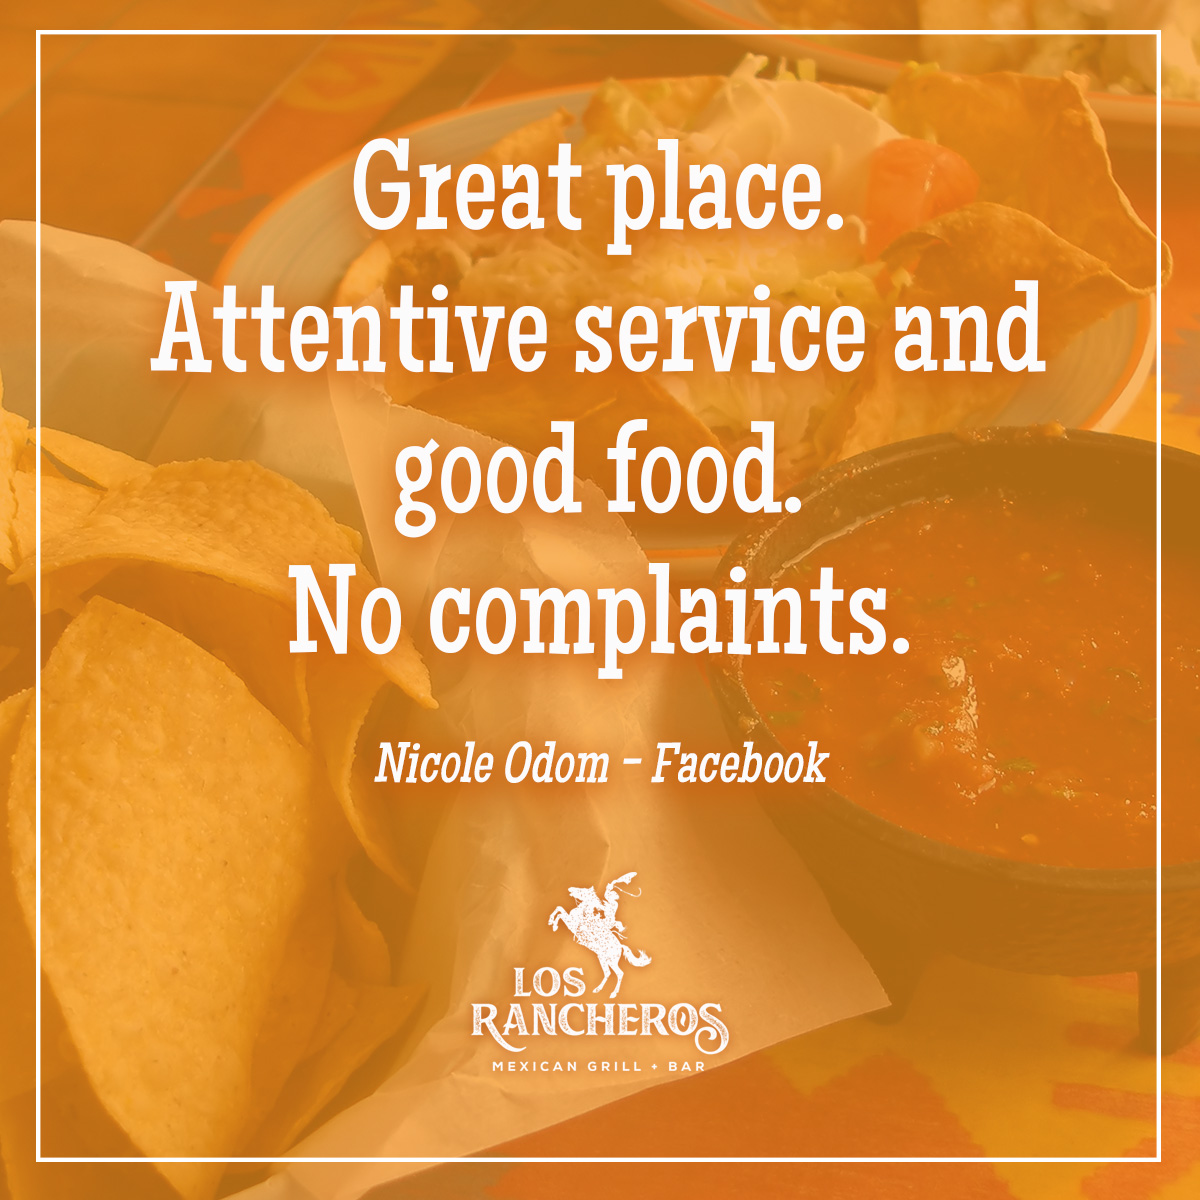 Come see us for attentive service and good food!  #HappyHour every day at our #PCB location! 241 #Margaritas | 3-7 pm & 9pm-Close! • • • • • #losrancheros #losrancherospcb #panamacityfl #panamacitybeach #mexicanfood #mexicanrestaurant #tacos #burritos #testimonial